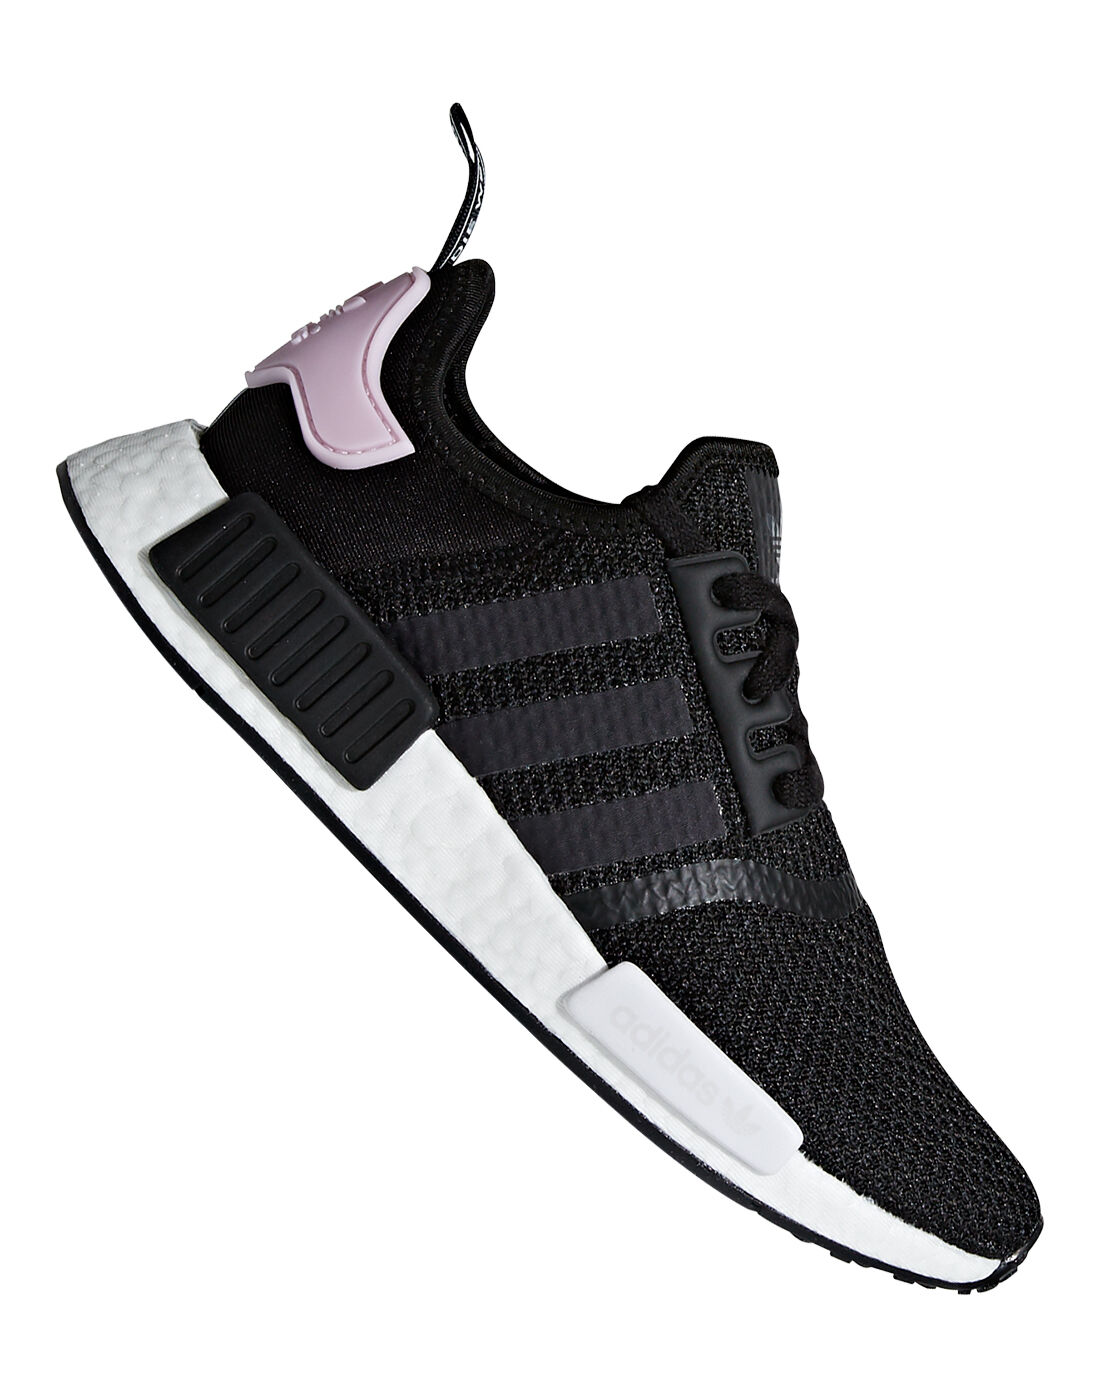 buy popular bc37c b63a0 ... shopping womens nmdr1 womens nmdr1 203e3 f9210 shopping womens nmdr1  womens nmdr1 203e3 f9210  where to buy adidas nmd r1 womens 6.5 black ice  purple ...